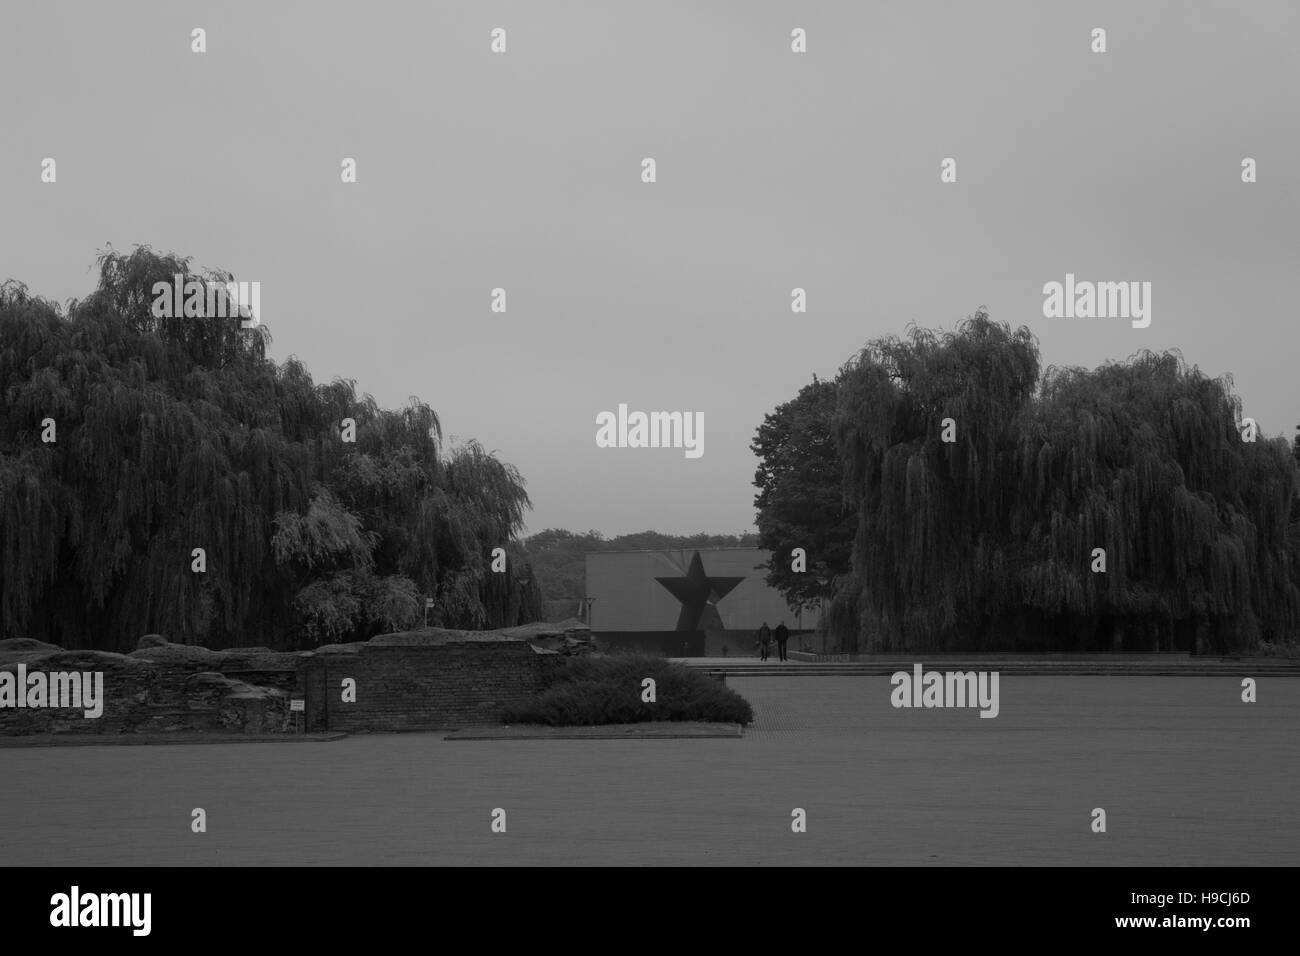 Brest Fortress. Memorial to fallen heroes. - Stock Image